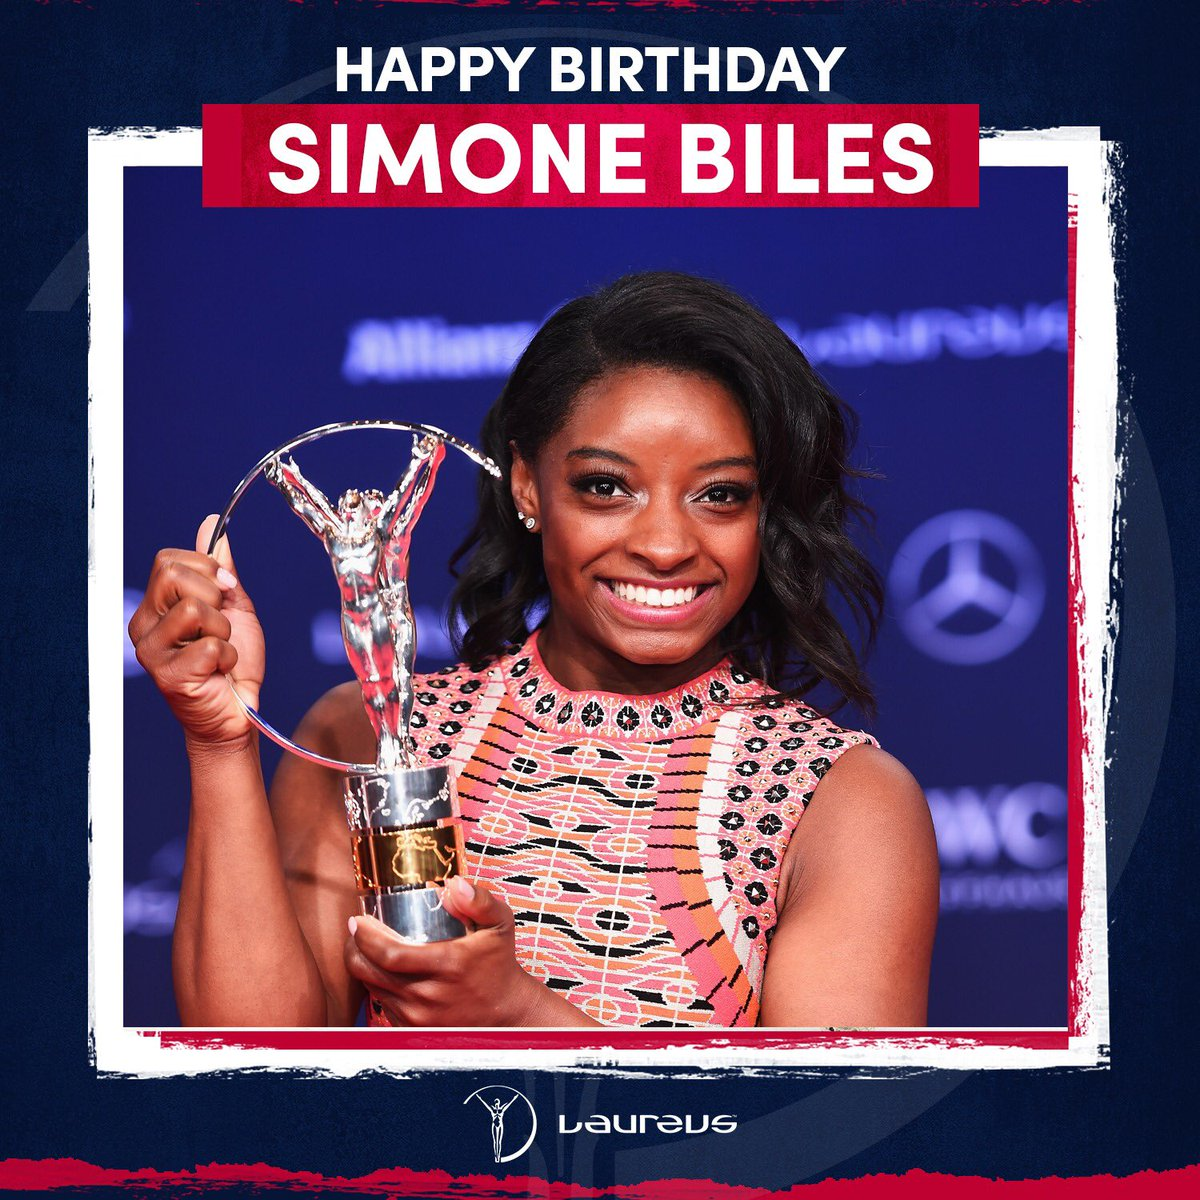 Happy 23rd Birthday to three-time Laureus World Sportswoman of the Year, @Simone_Biles! 🎂  The most decorated gymnast in World Championship history. What an athlete! 🏆   #Laureus20 #SportUnitesUs